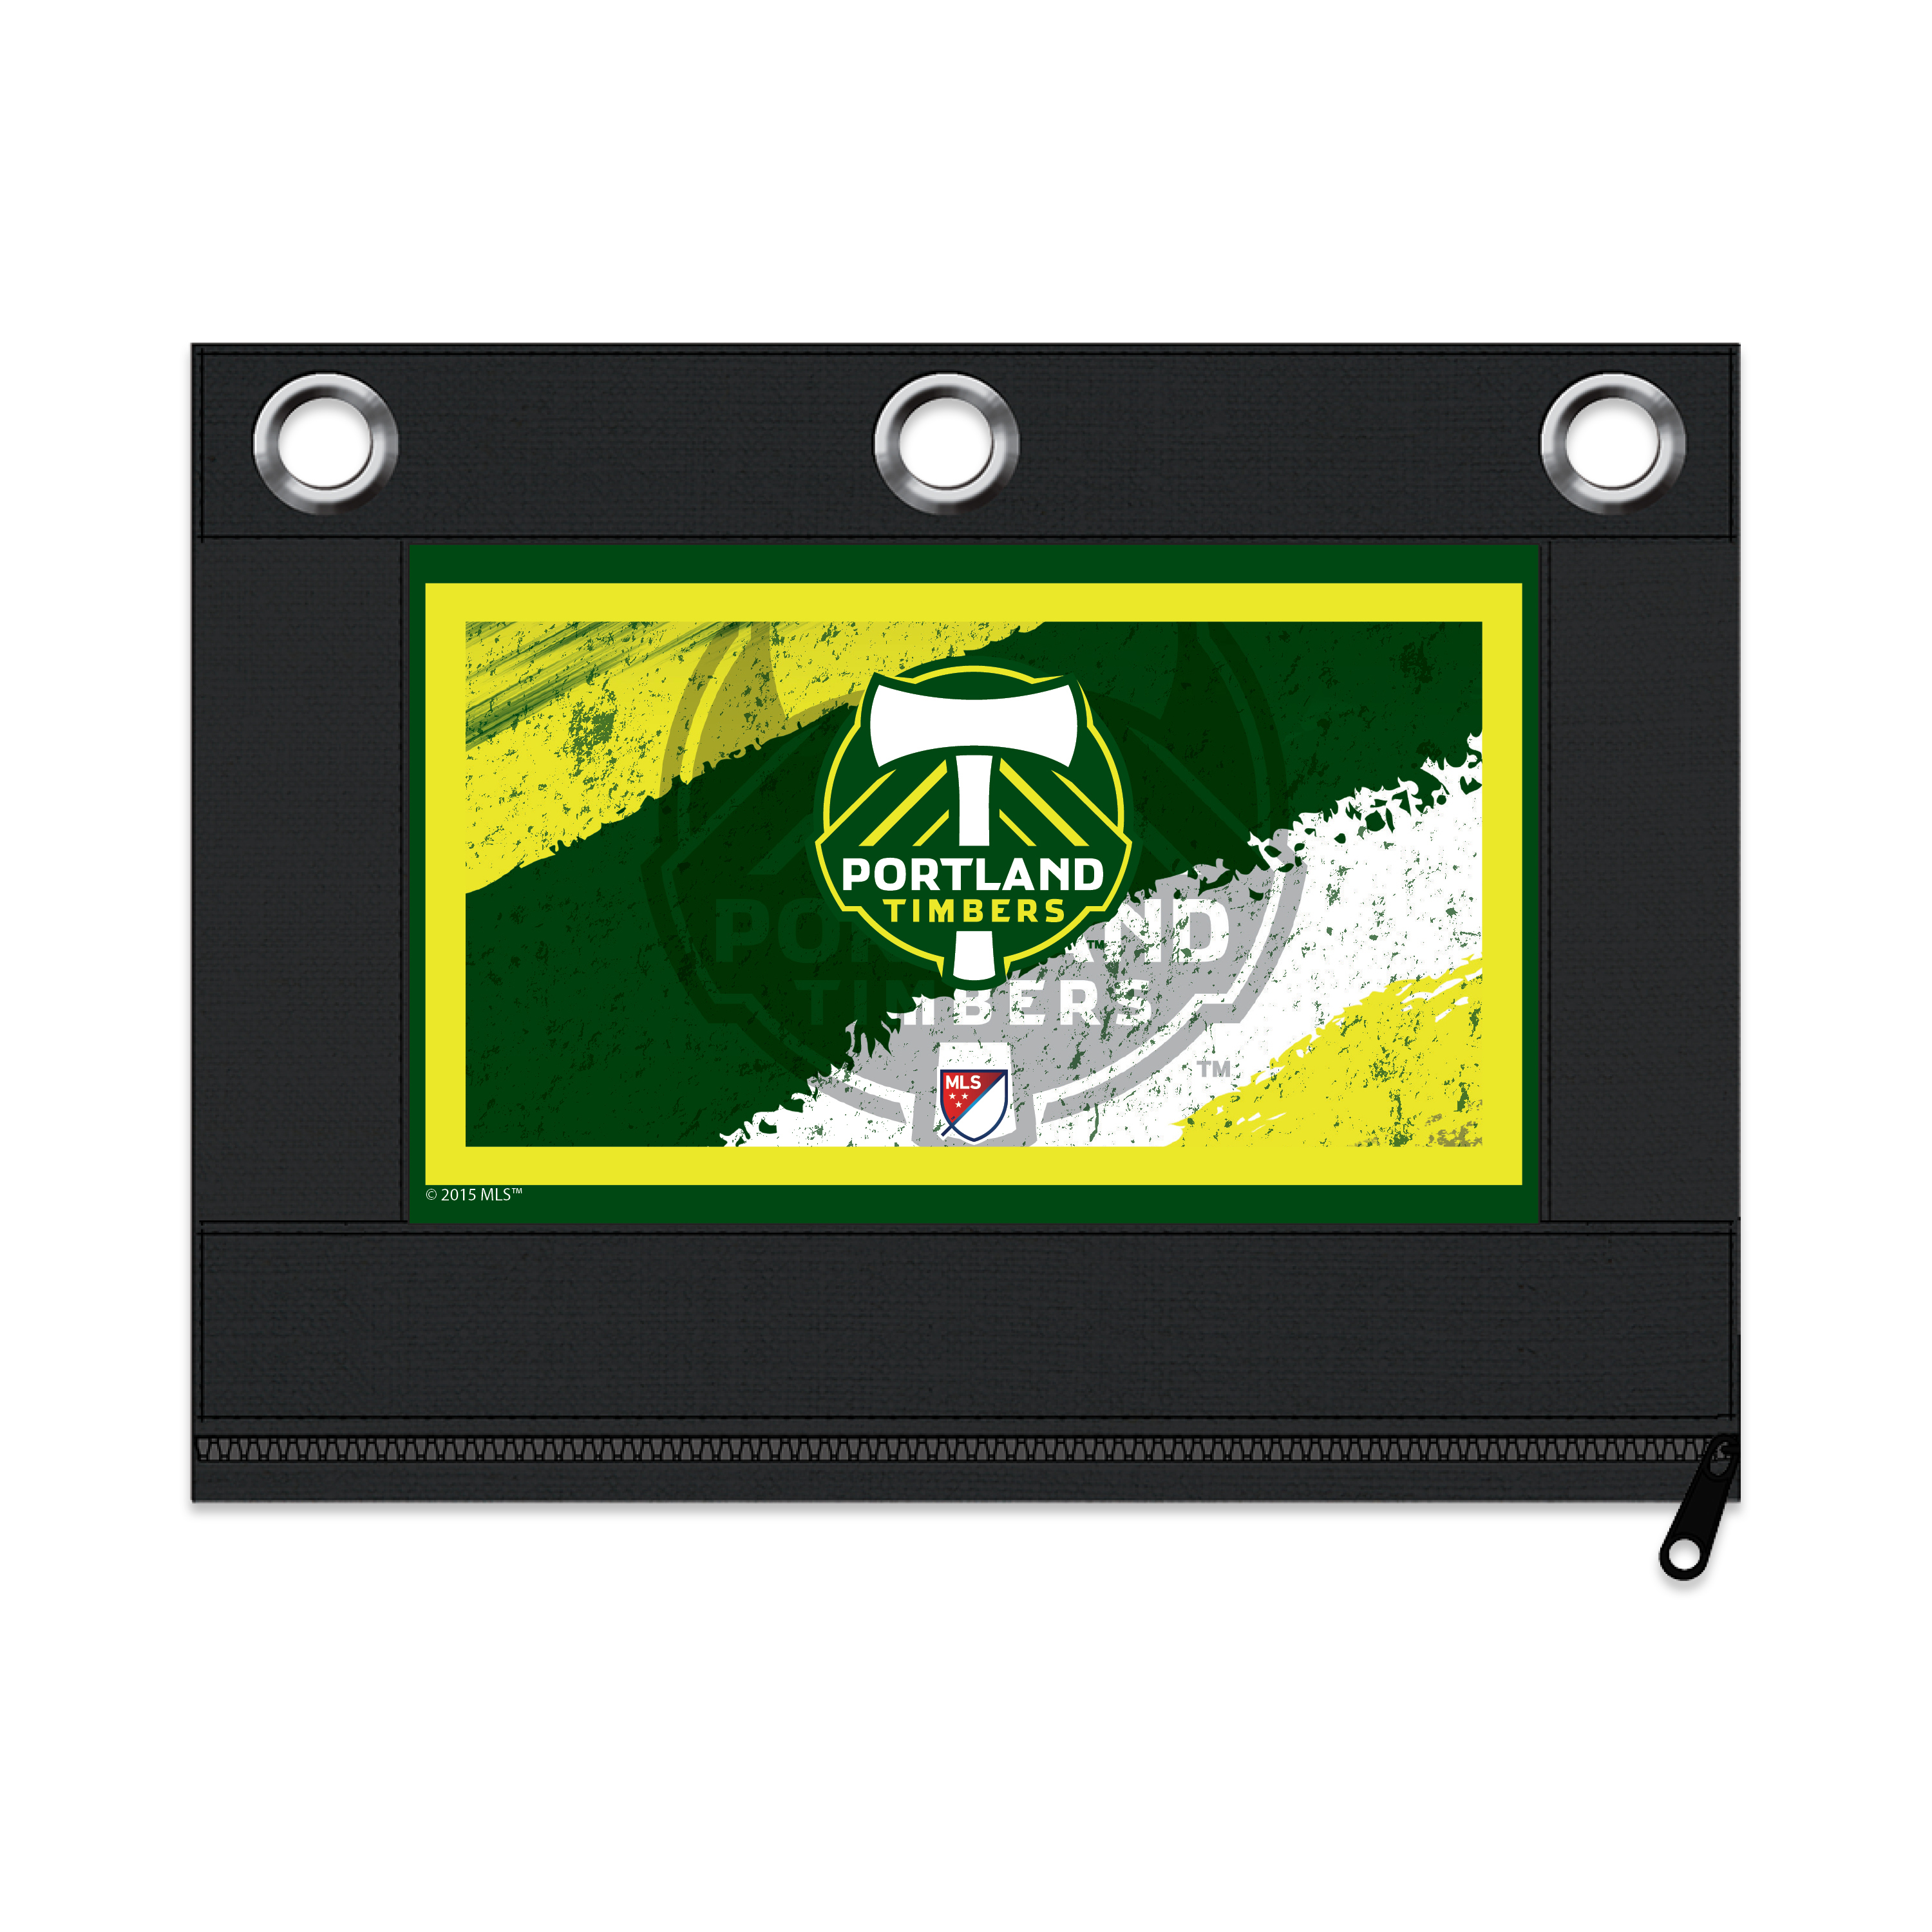 MLS Portland Timbers Zippered Pencil Pouch with Grommets